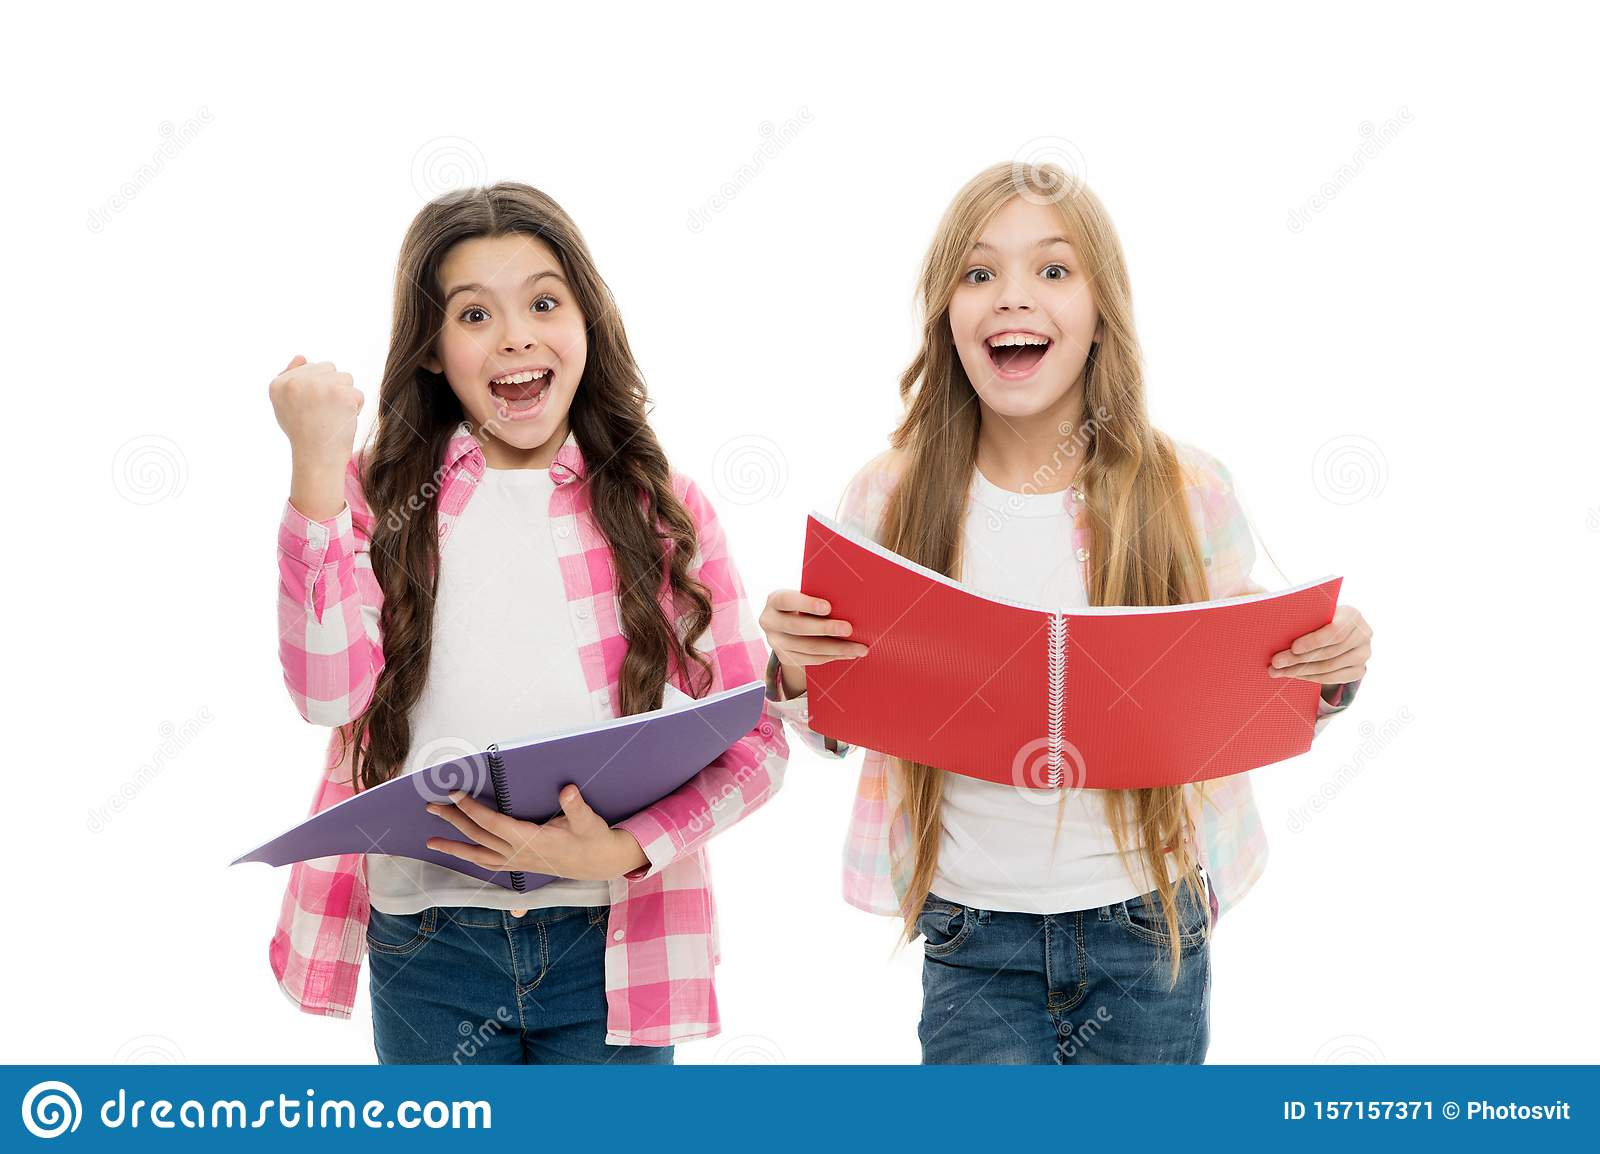 We love study. Studying is fun. Buy book for extra school course. Language courses for youth. Girls with school